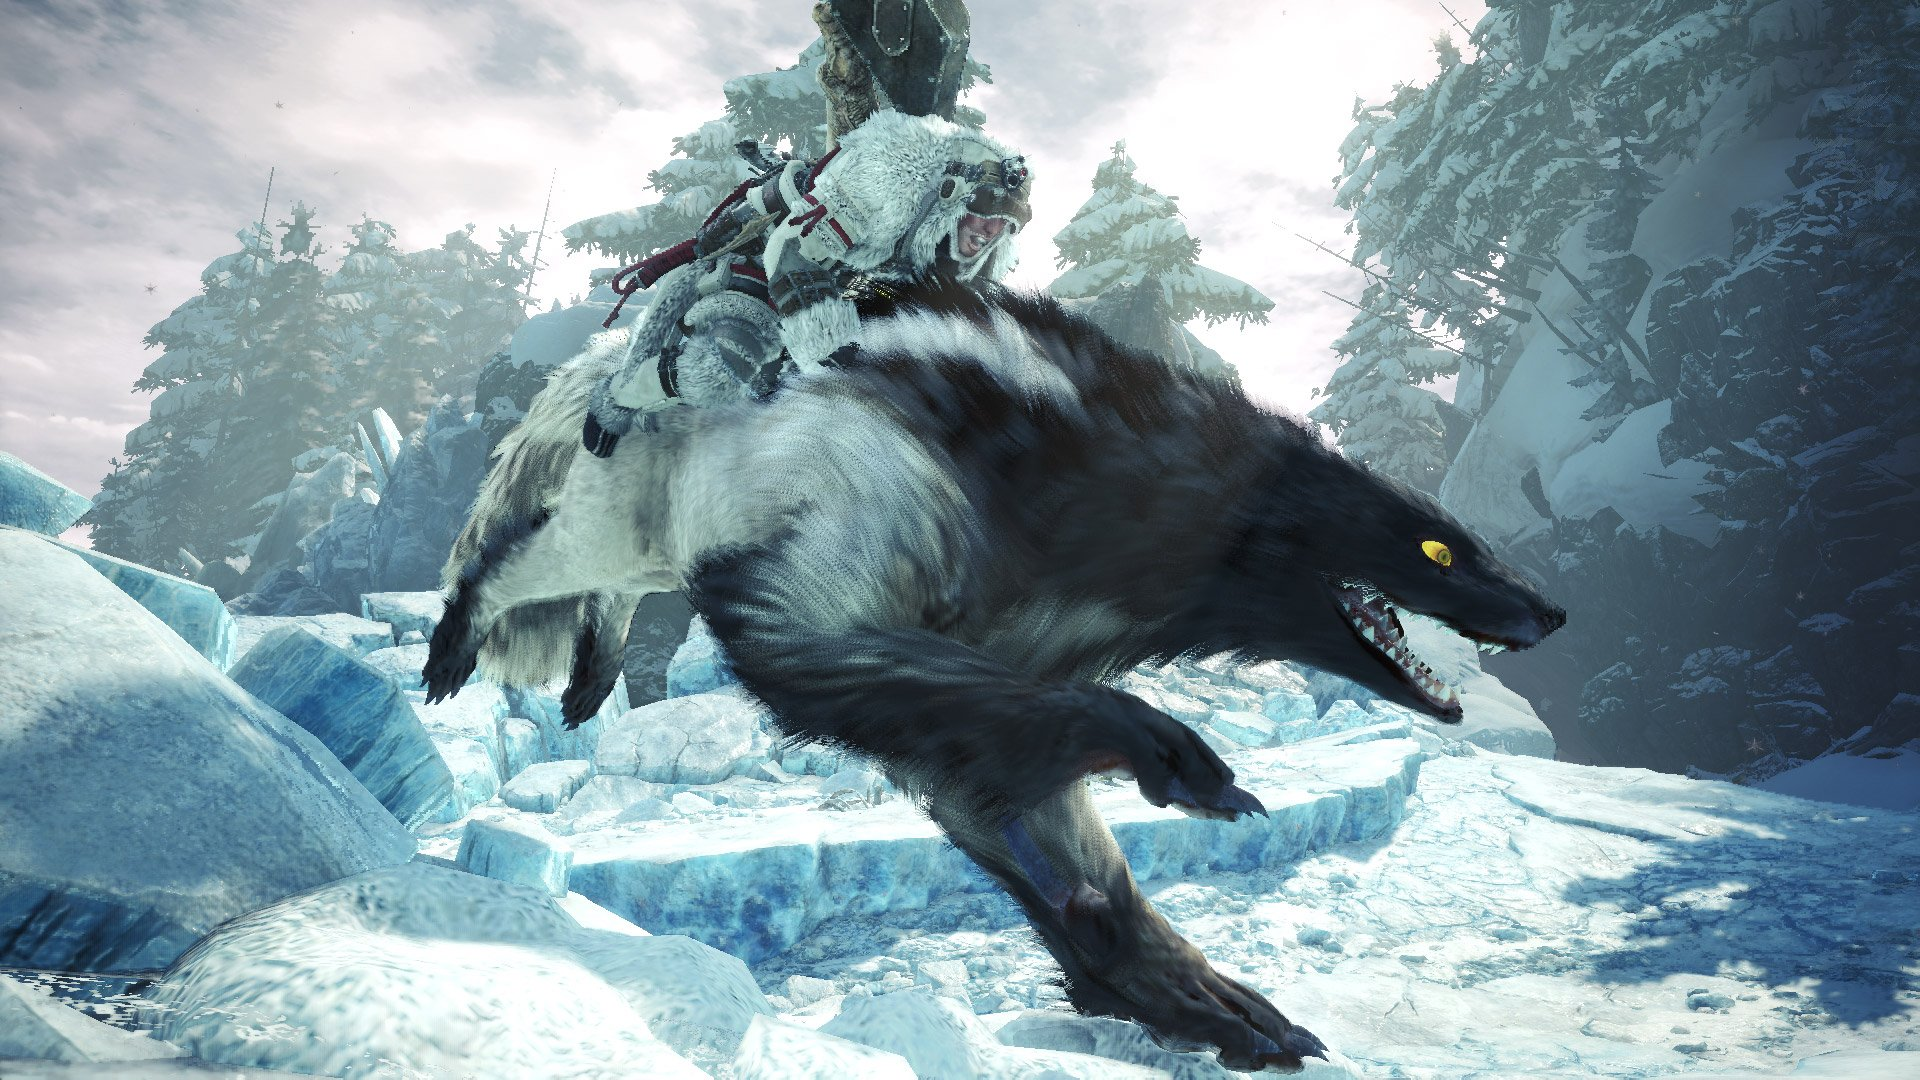 Riding a Wulg in Monster Hunter World: Iceborne